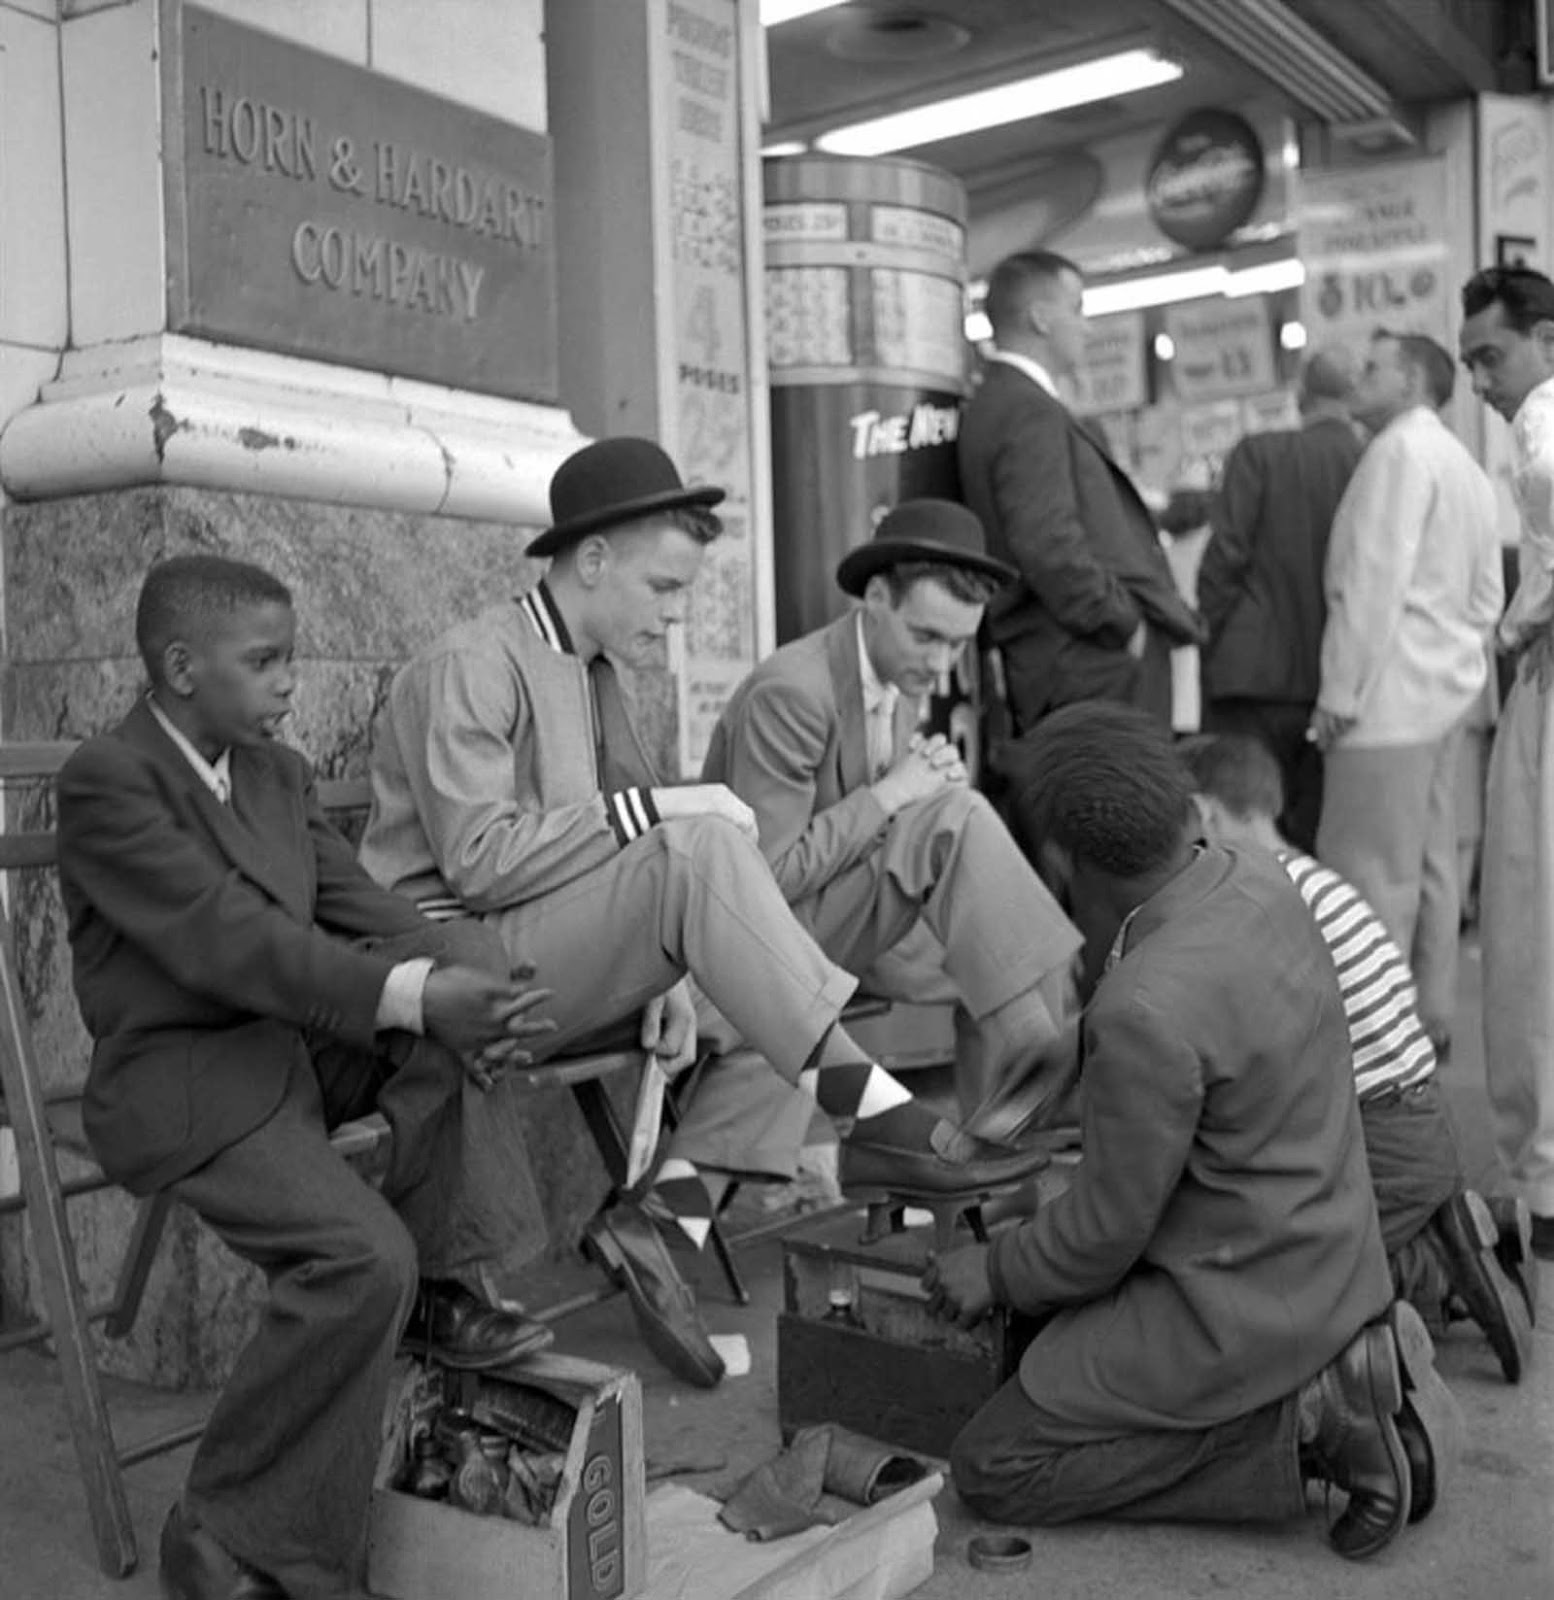 Shoe Shine at Horn & Hardart Automat.